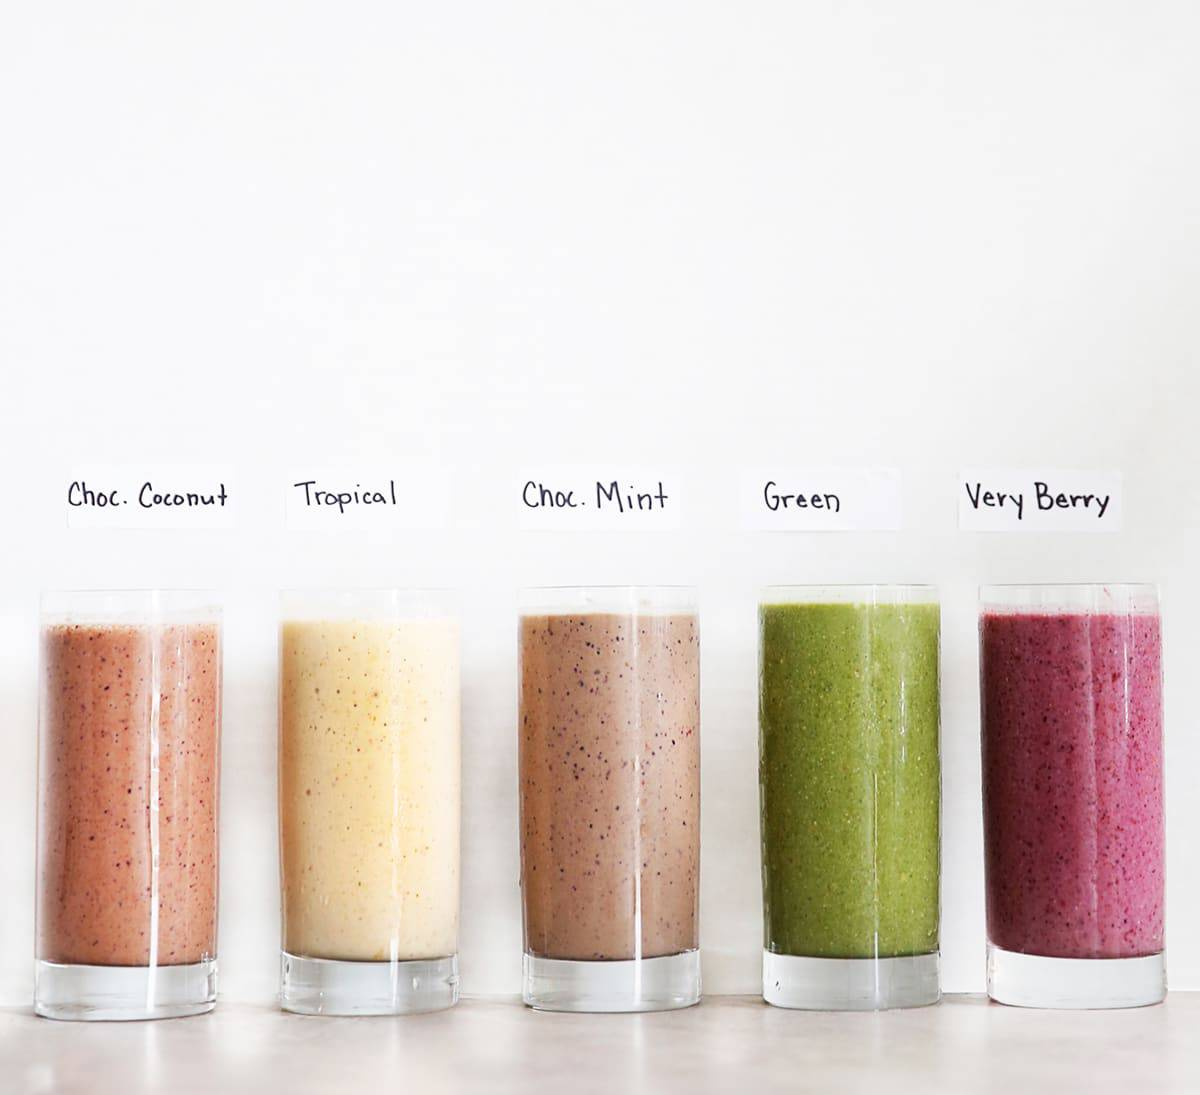 Freezer Pack Smoothie Series